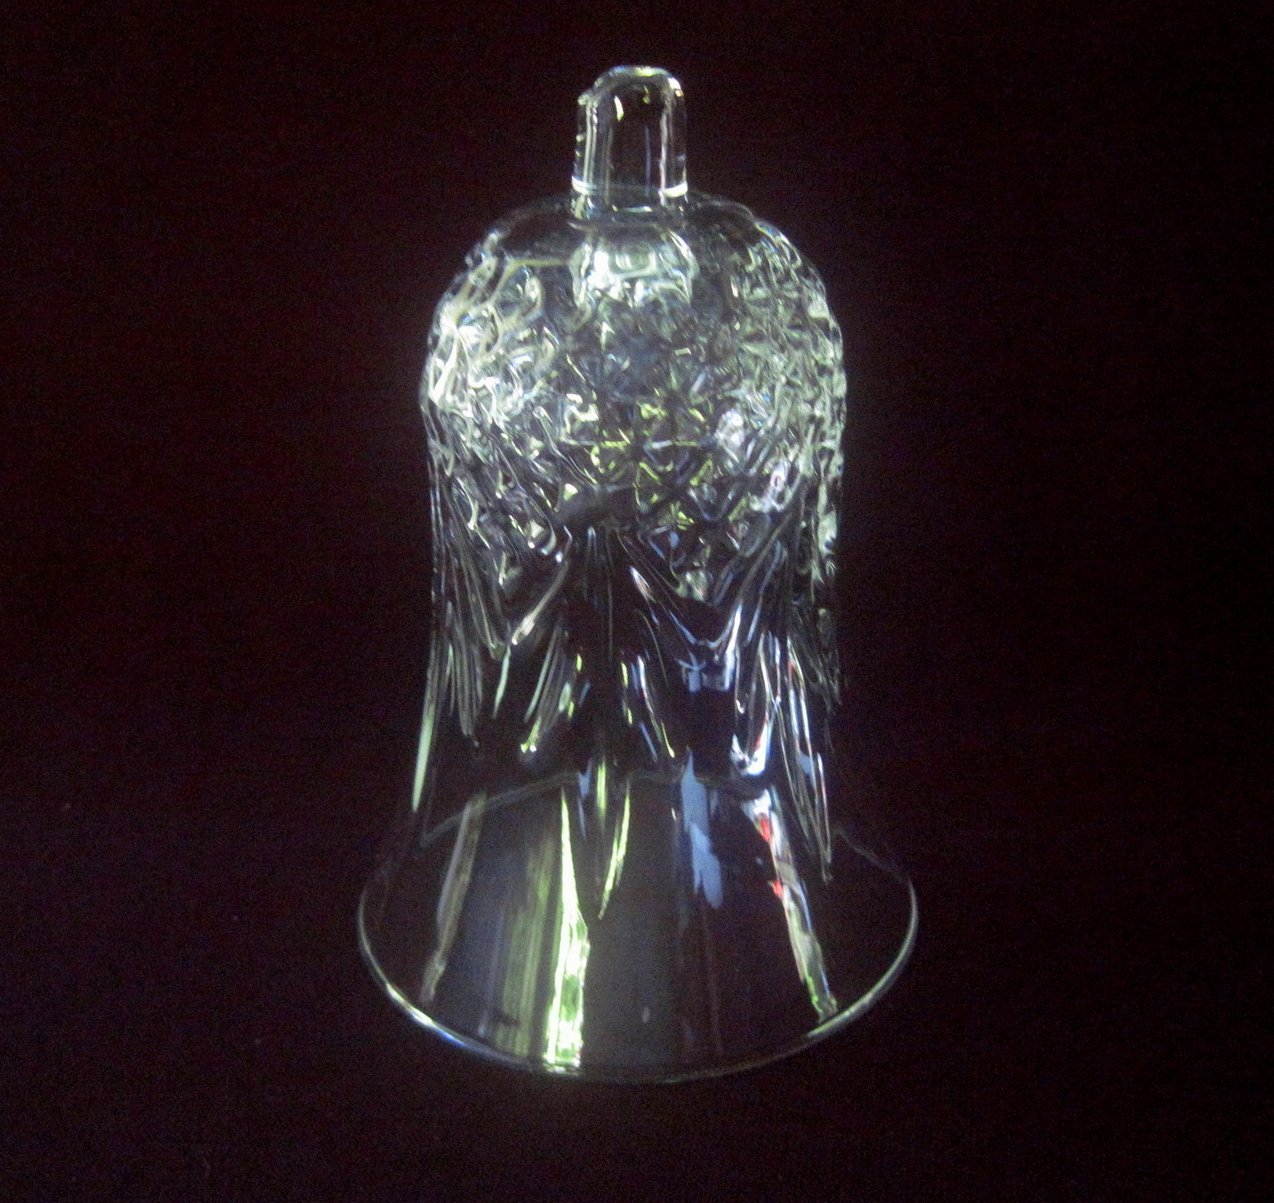 Home Interiors Peg Votive Holder Crystal Windsor 11334 Med 5 inches